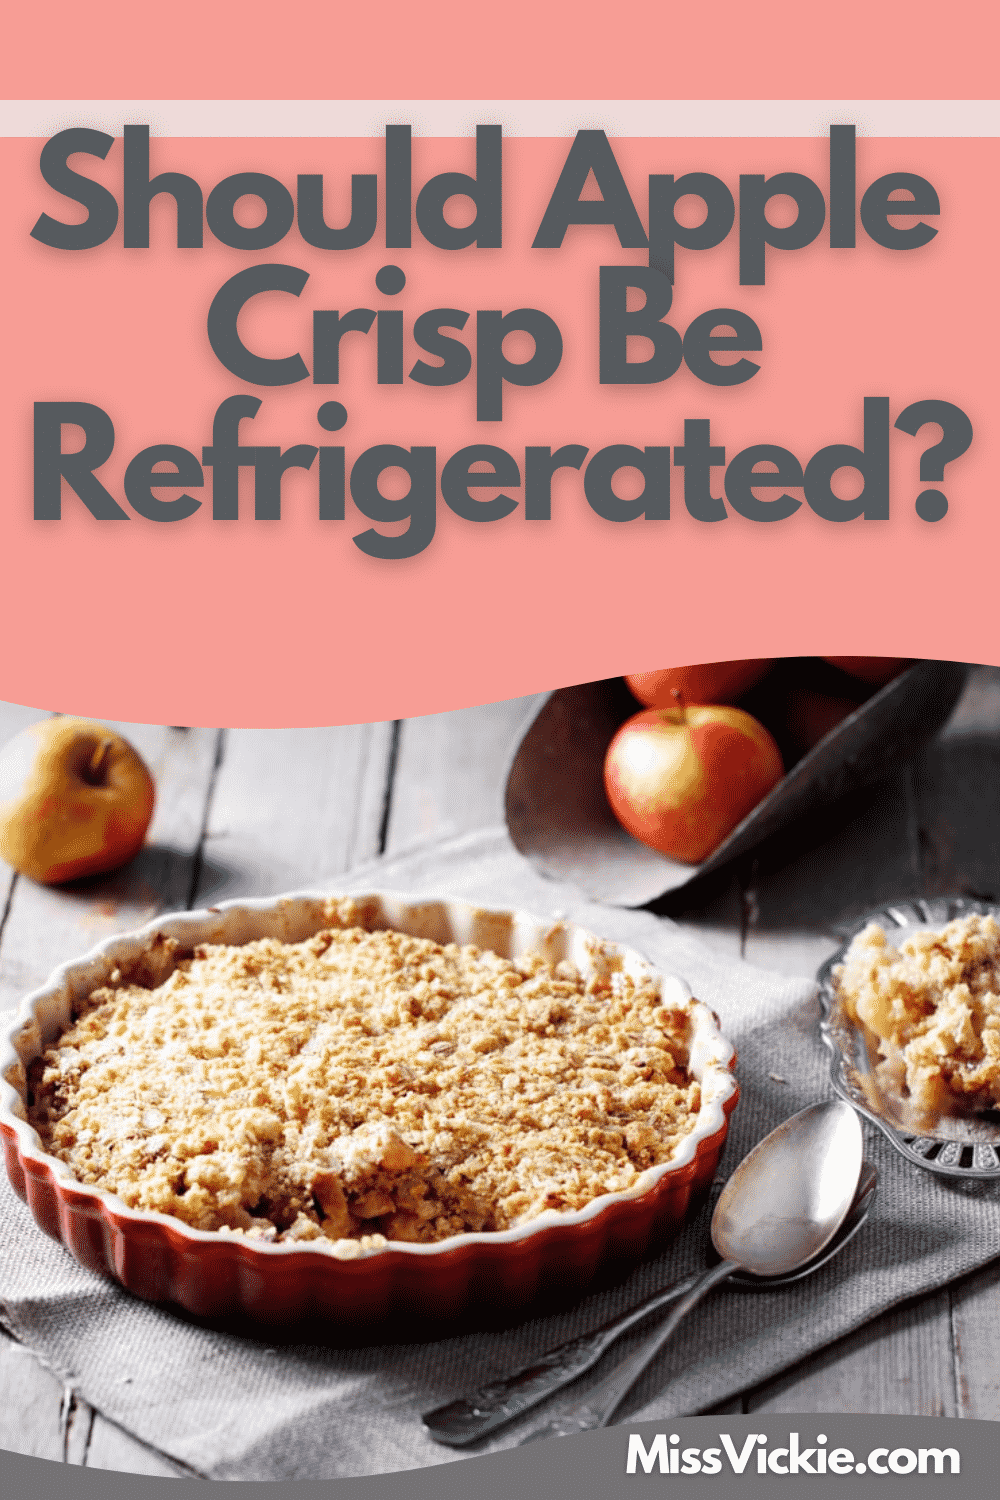 Should Apple Crisp Be Refrigerated